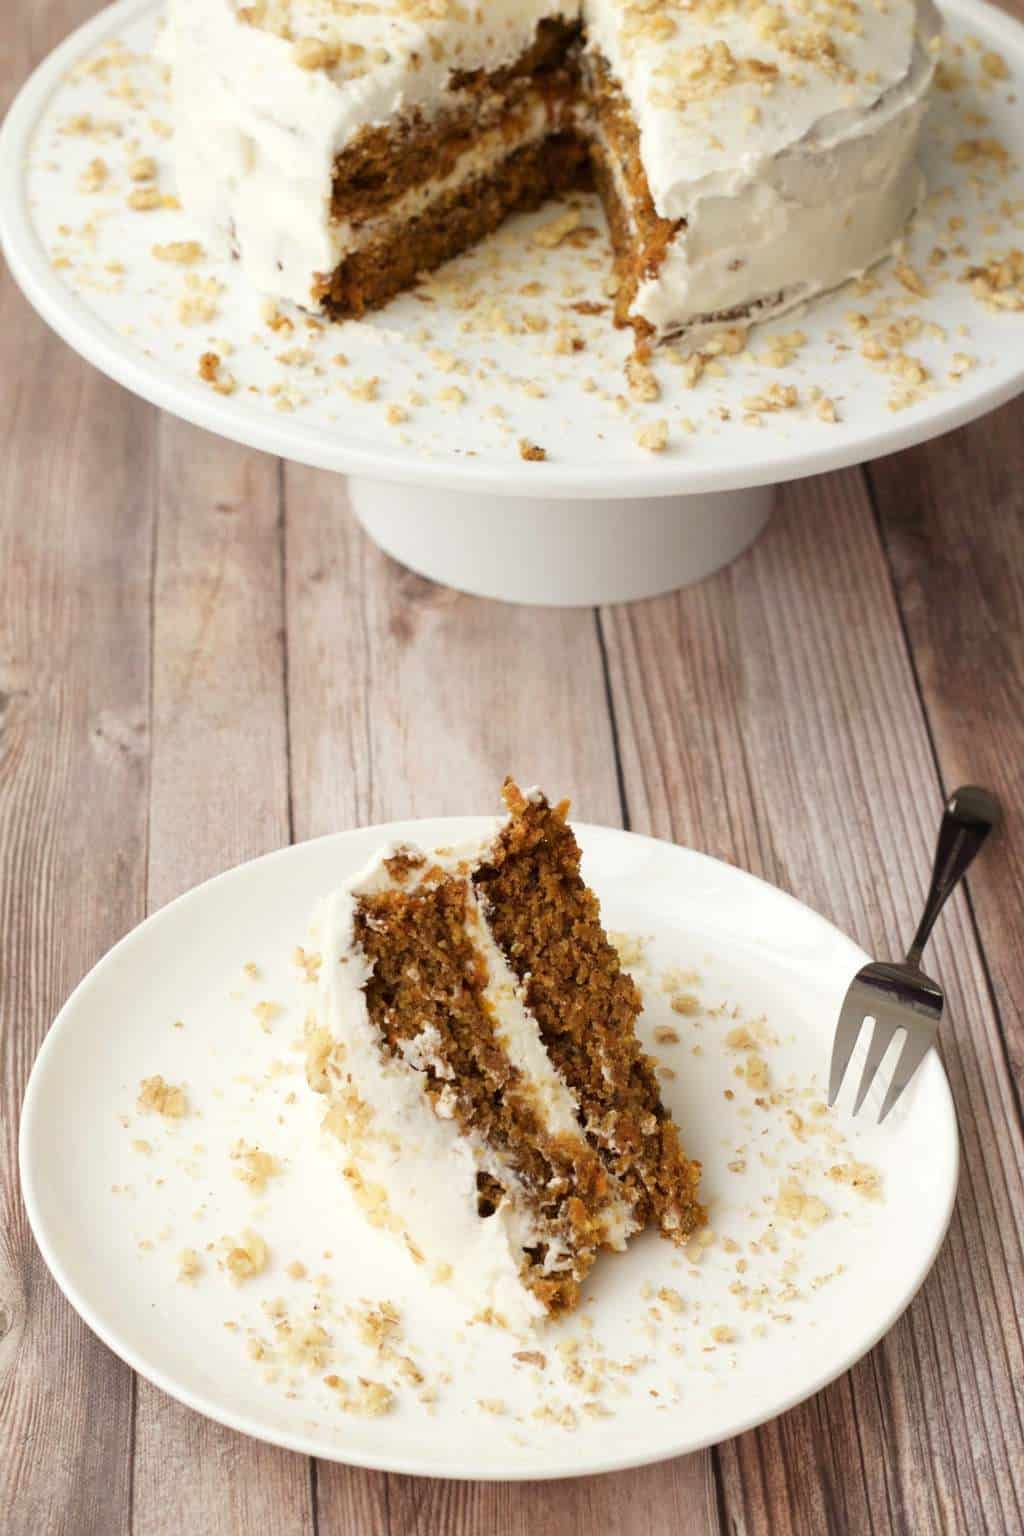 Moist Vegan Carrot Cake with Lemon Buttercream Frosting #vegan #lovingitvegan #carrotcake #cake #dessert